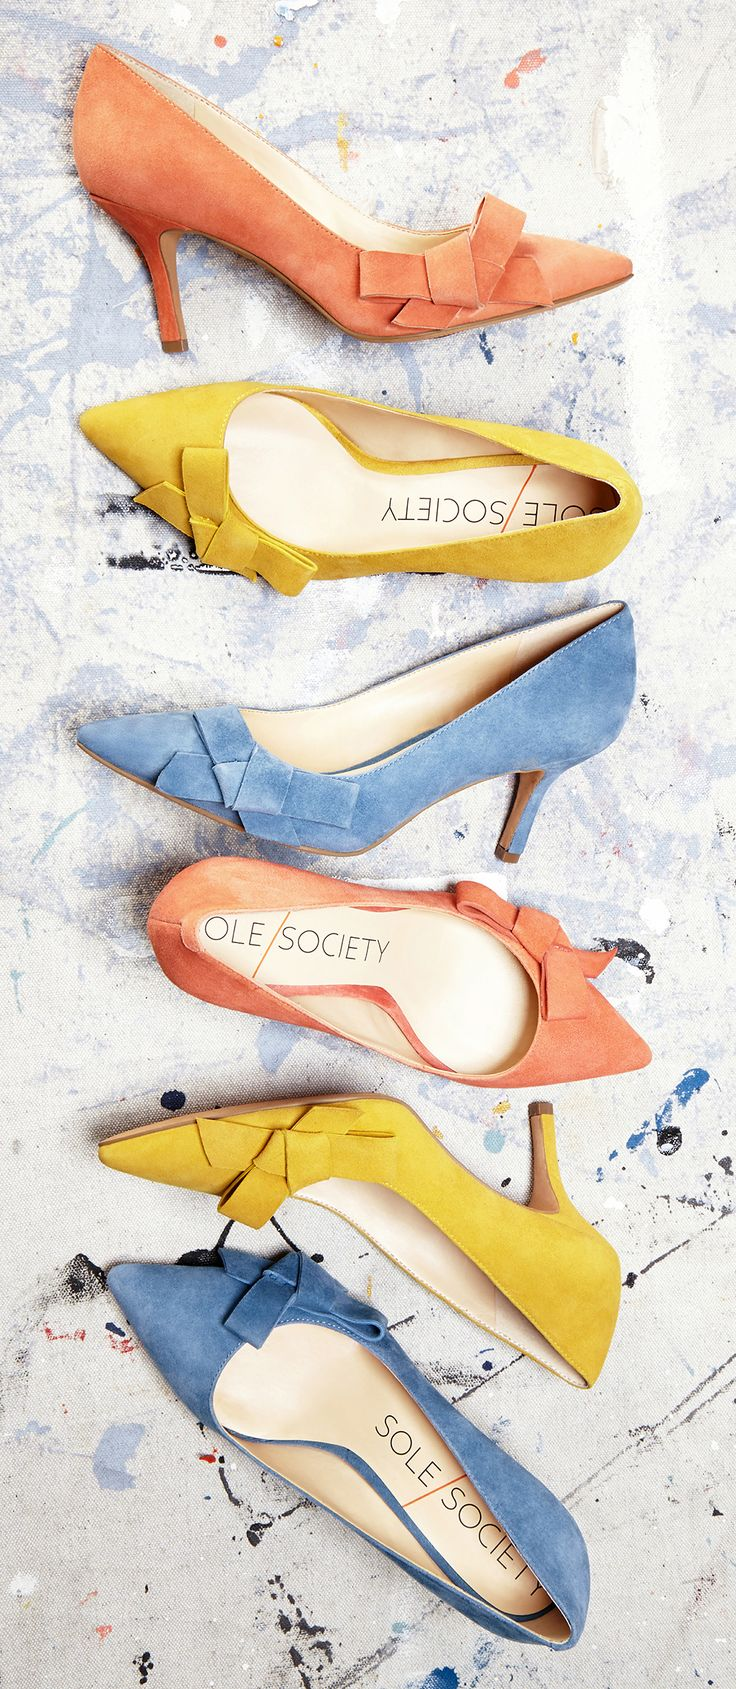 Lush suede mid heel pumps with ladylike bows for spring